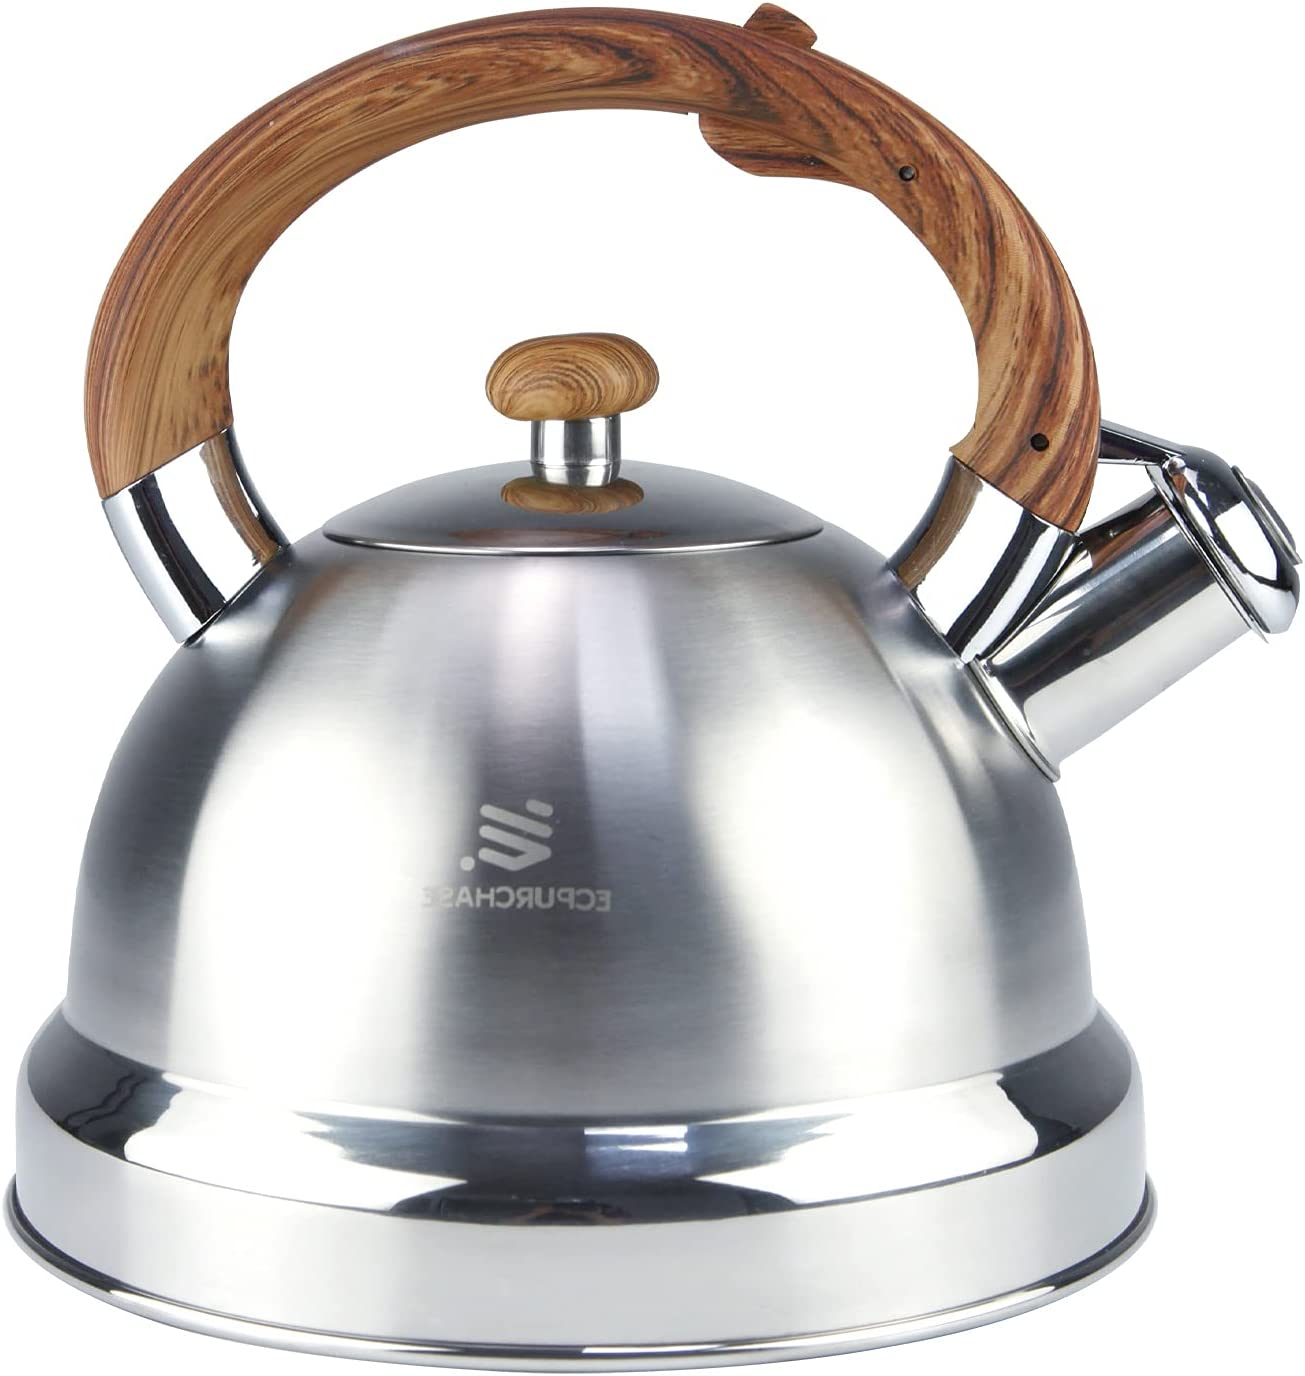 Stainless Steel Tea Kettles With Wood Pattern Handle - Loud Whistling Tea Kettle For Stove Top - Teapot Stovetop Water Kettle Tea Pot For Induction Cooker, Electric, Gas, Halogen, Radiant Stove